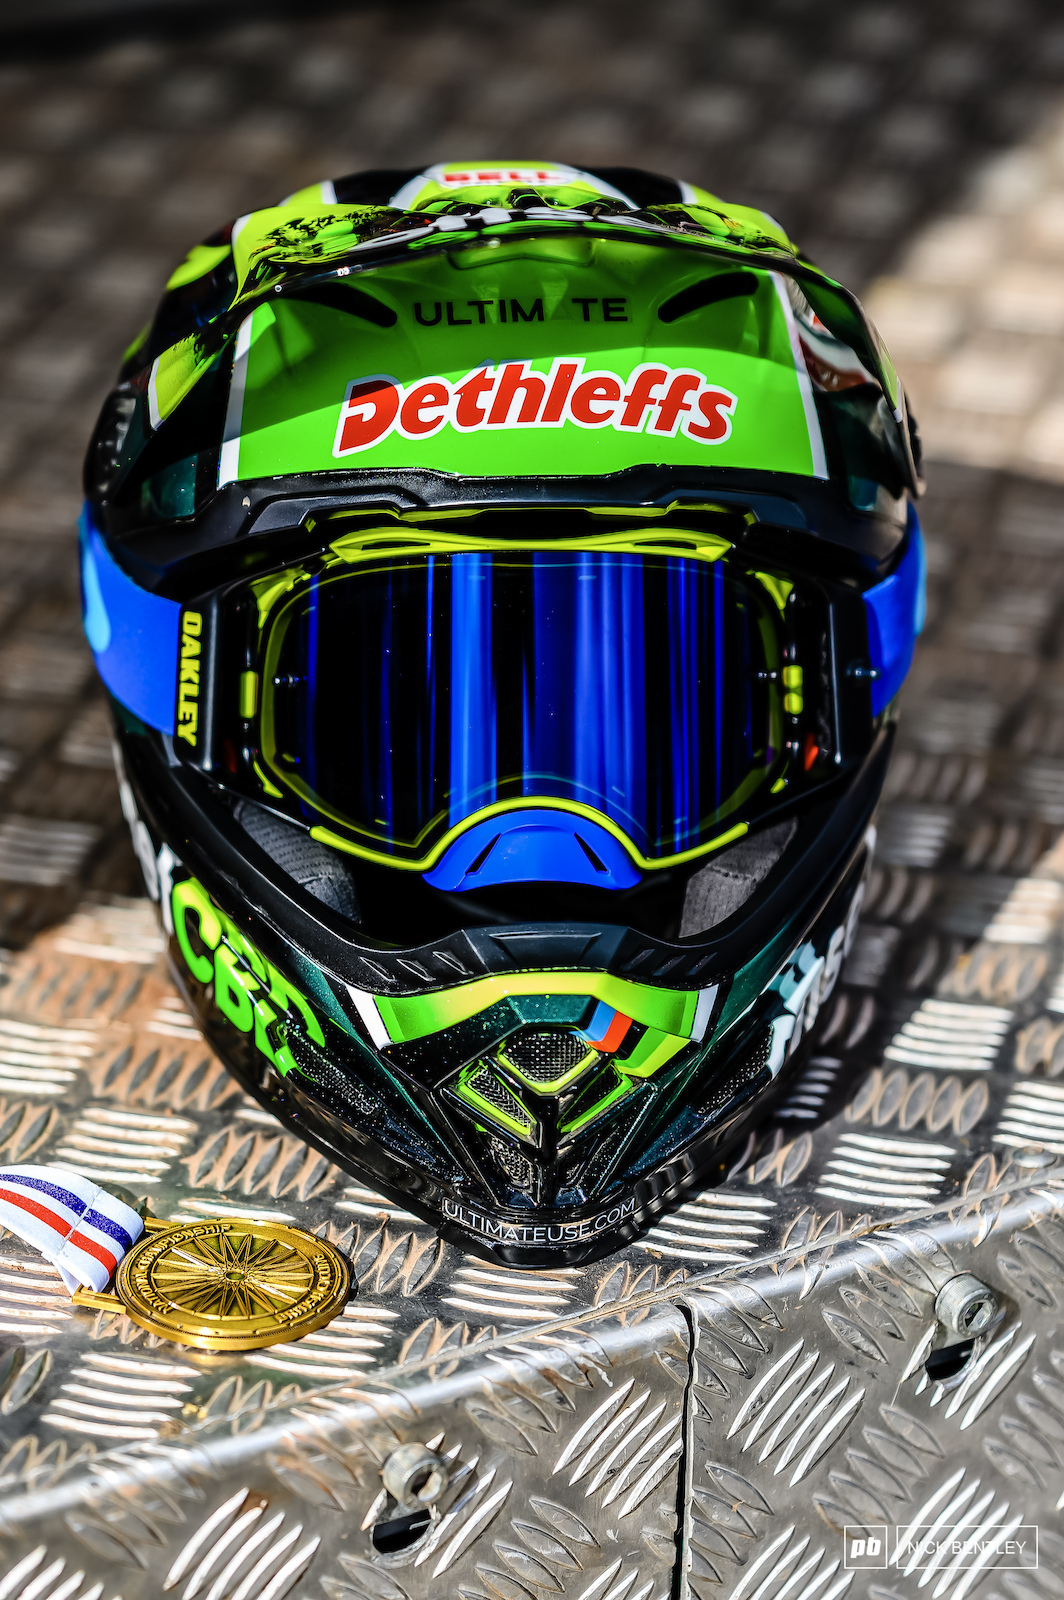 It s not everyday you see a National Championships Gold medal just chilling out on the podium with a custom painted Bell helmet. These both belonged to the Men s winner Scott Baumount.